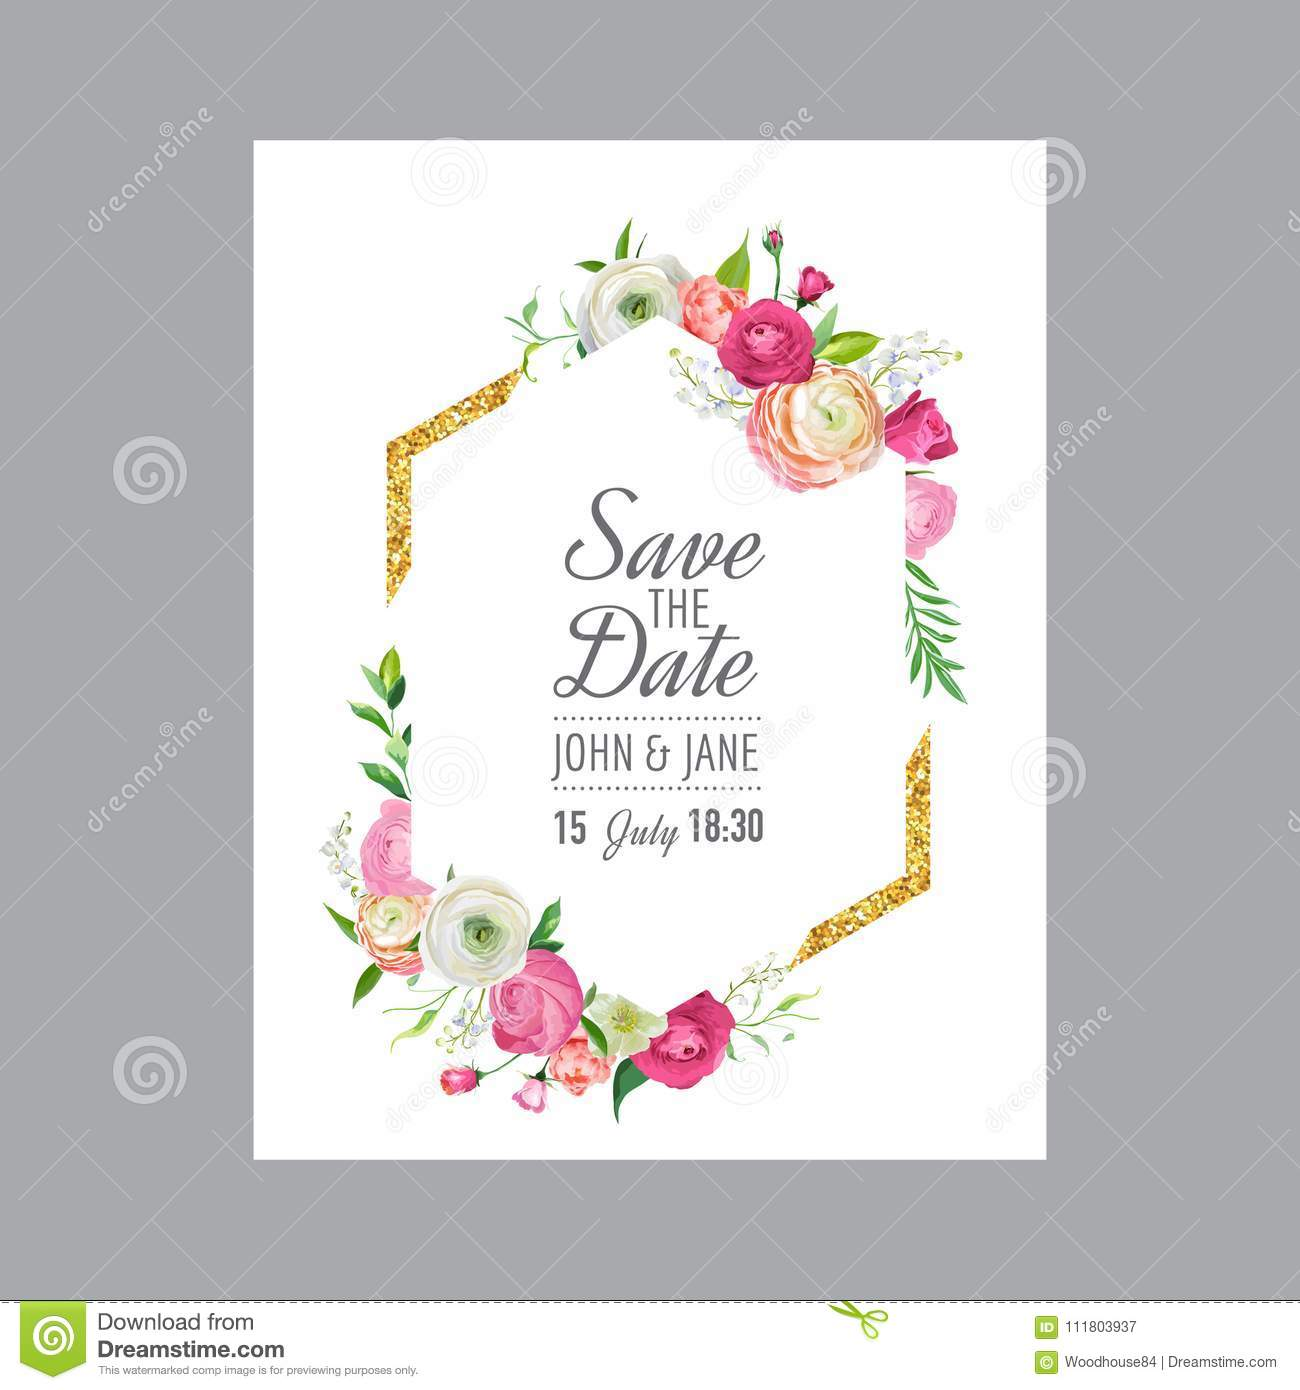 Save The Date Wedding Floral Ornament Wedding Floral: Save The Date Card Template With Gold Glitter Frame And